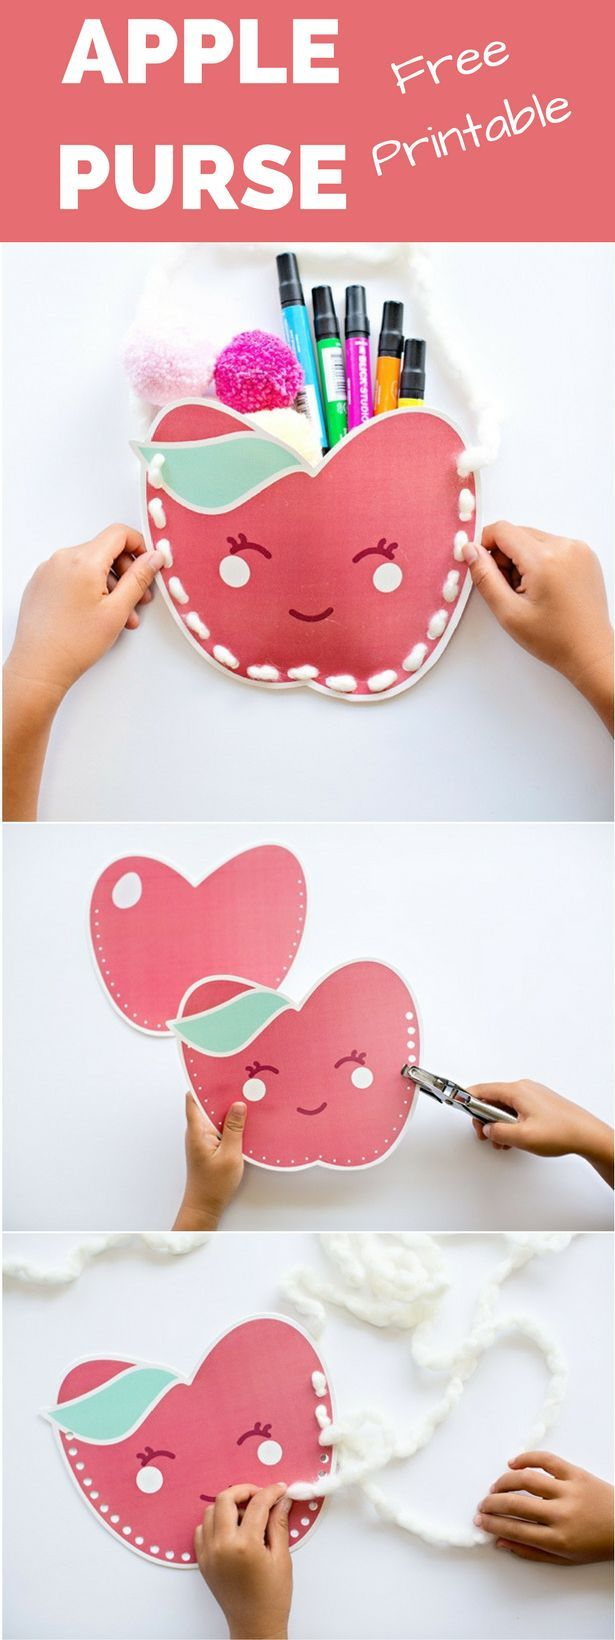 Cute Free Printable Kawaii Apple Purse. Stuff these with treats or goodies for the kids to celebrate fall and back to school!